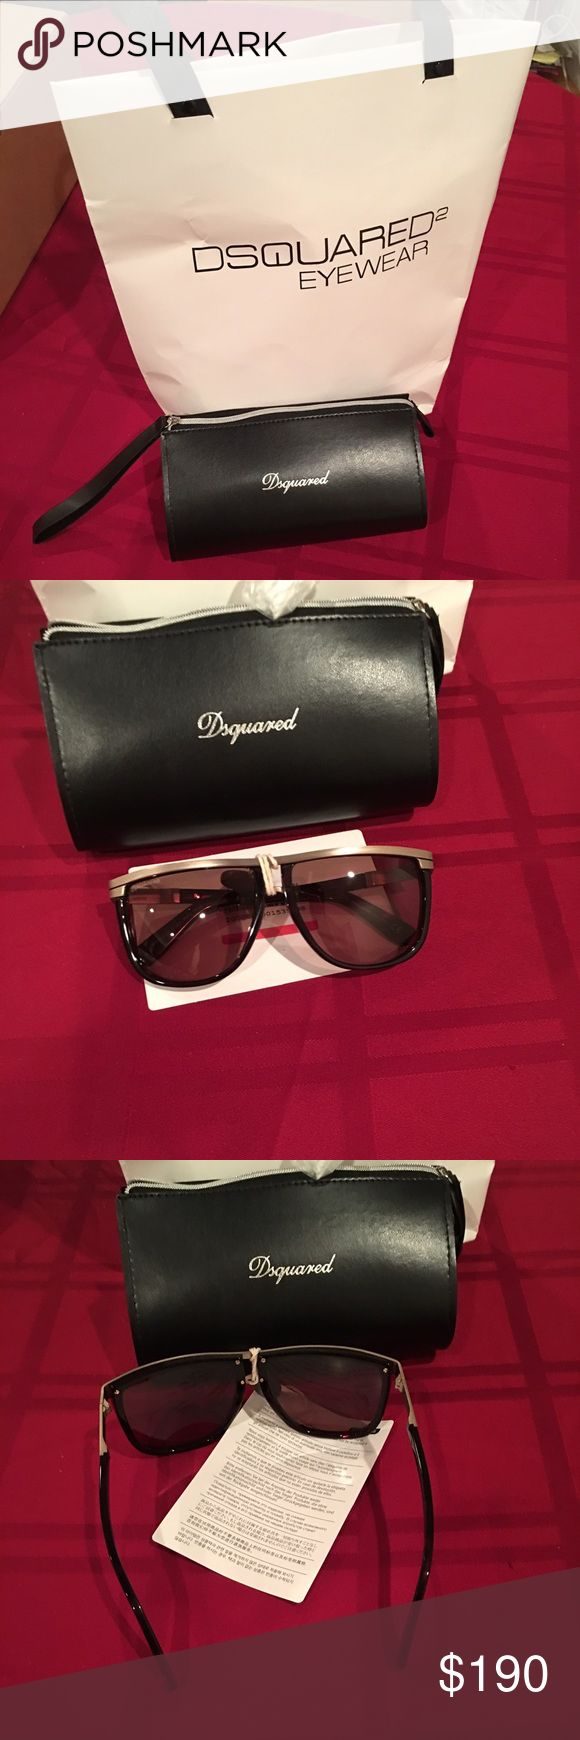 Marcus DQ0161MET/Logo metal/ Metallic and plastic frame/ tinted lenses/ composition Plastic, Metal/ Made in Italy DSQUARED Accessories Sunglasses